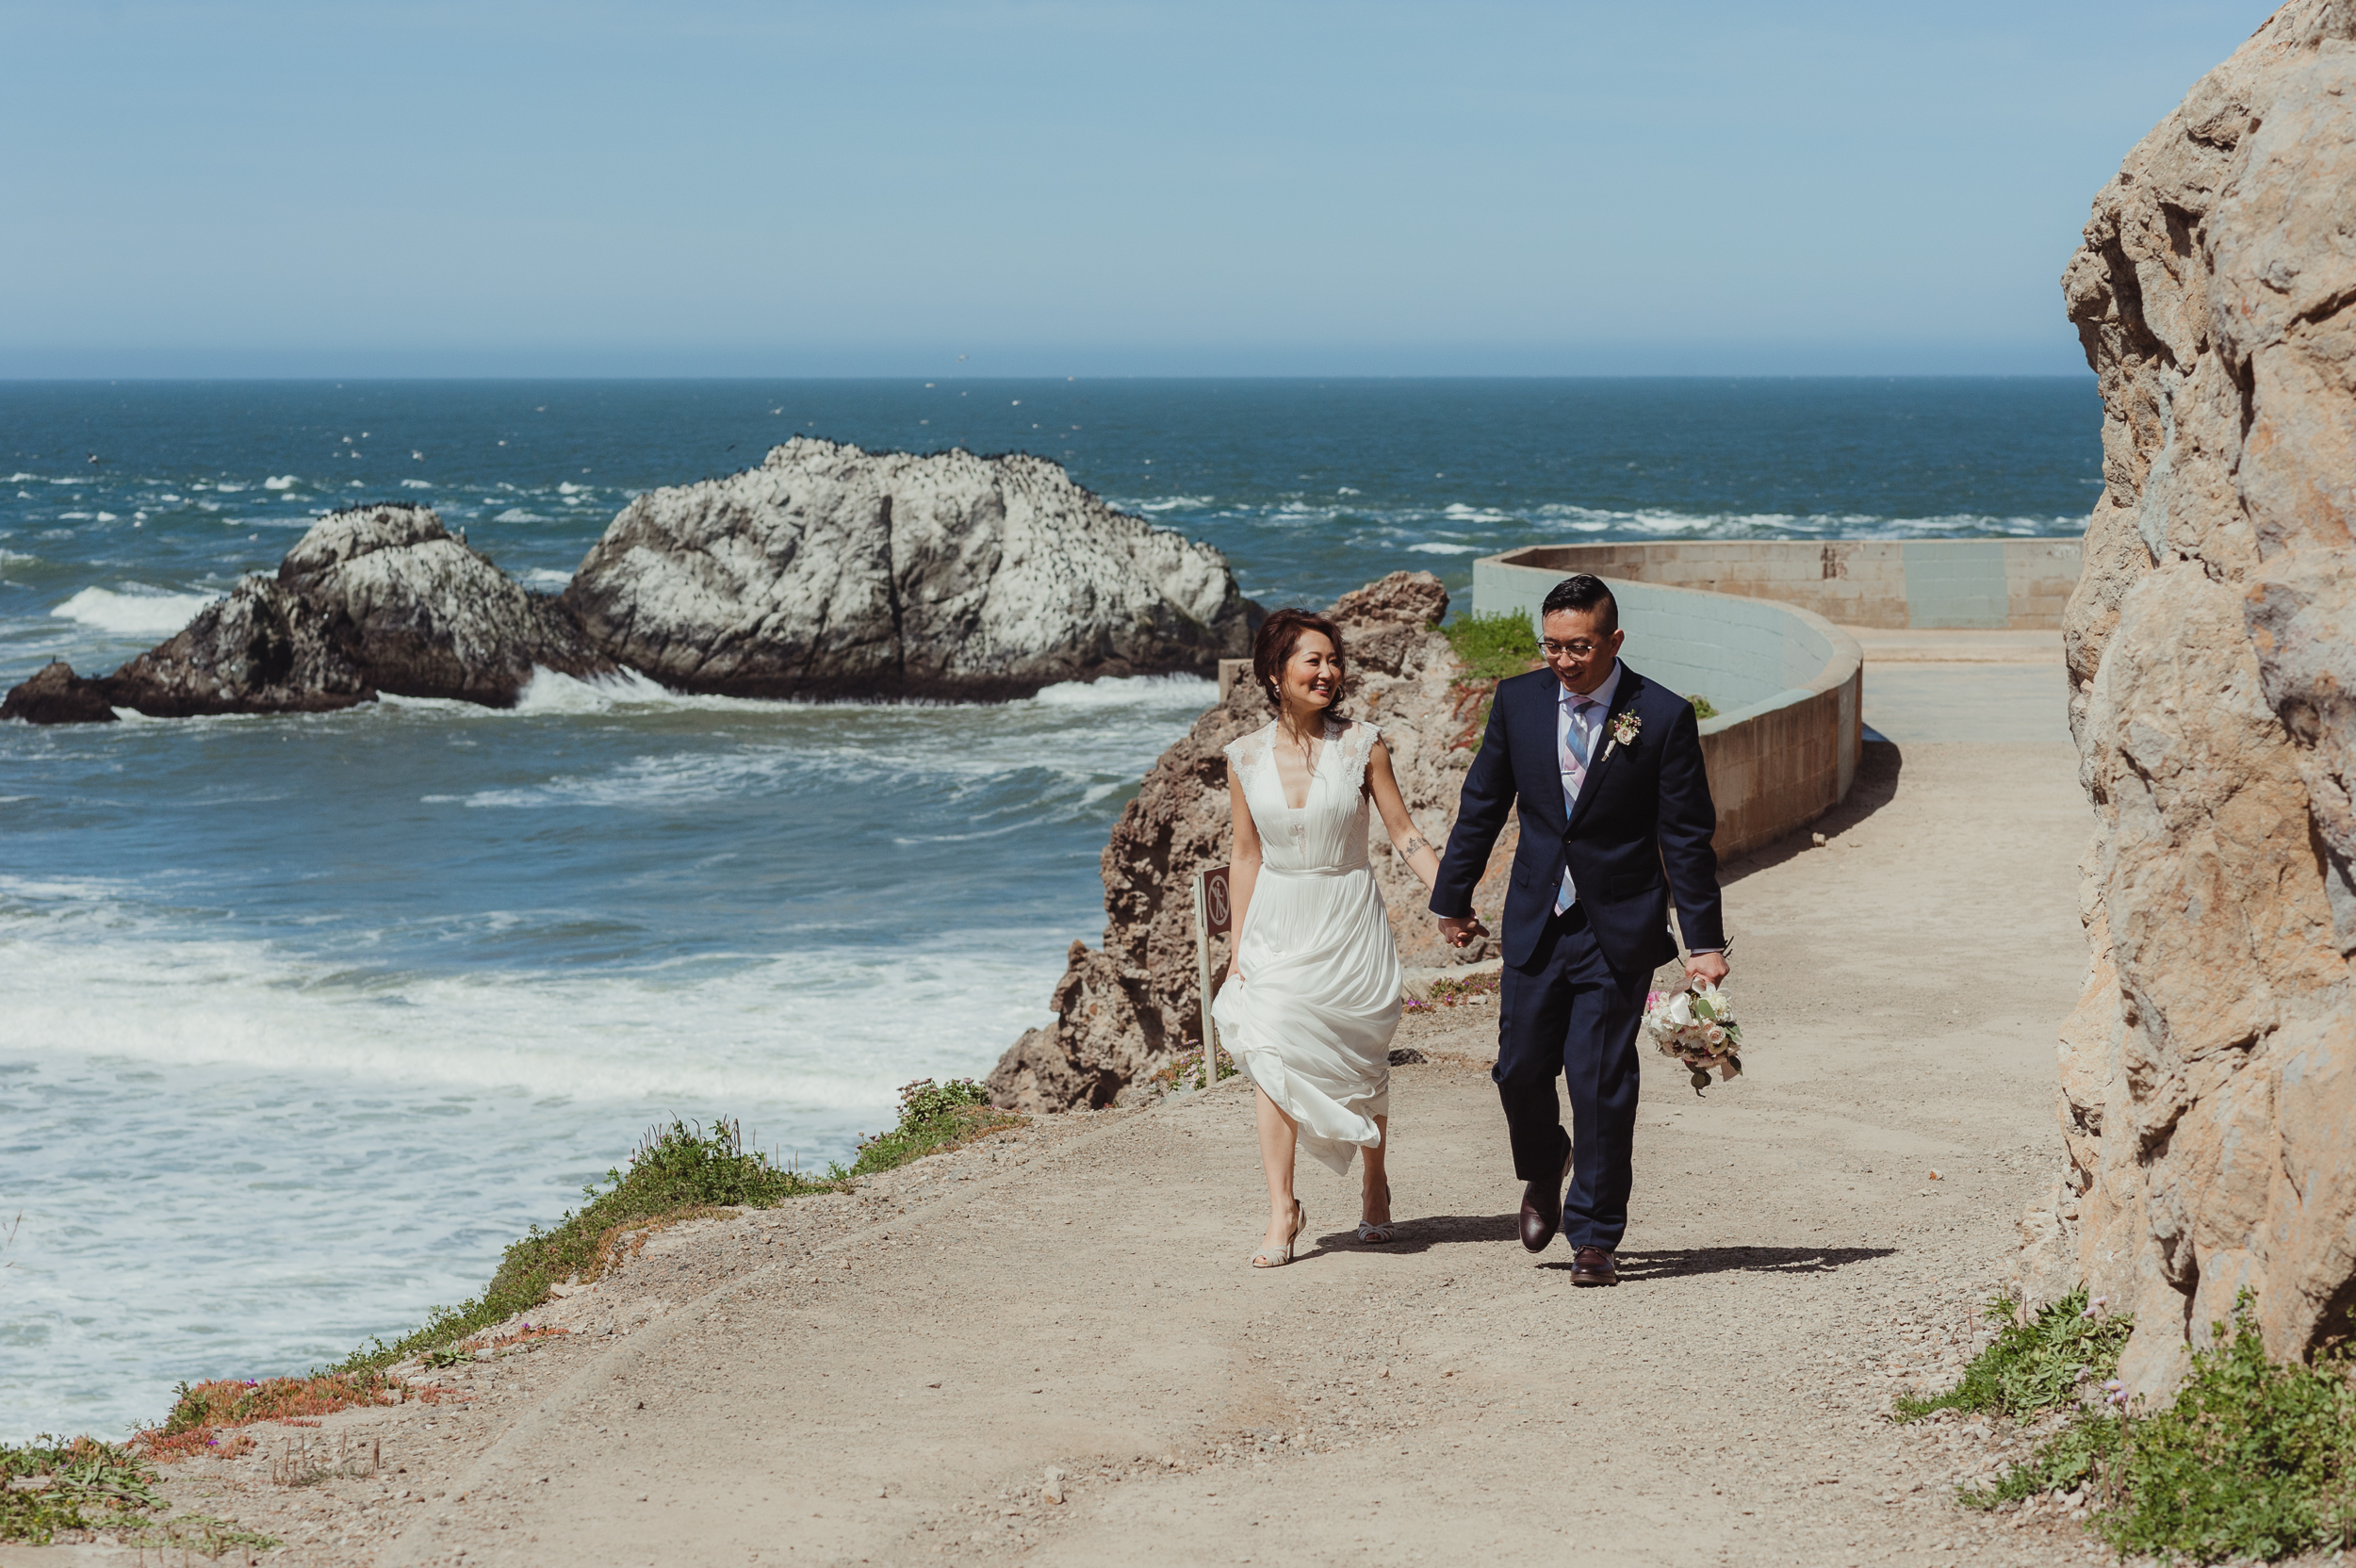 29-sf-city-hall-wedding-lands-end-vivianchen-306.jpg